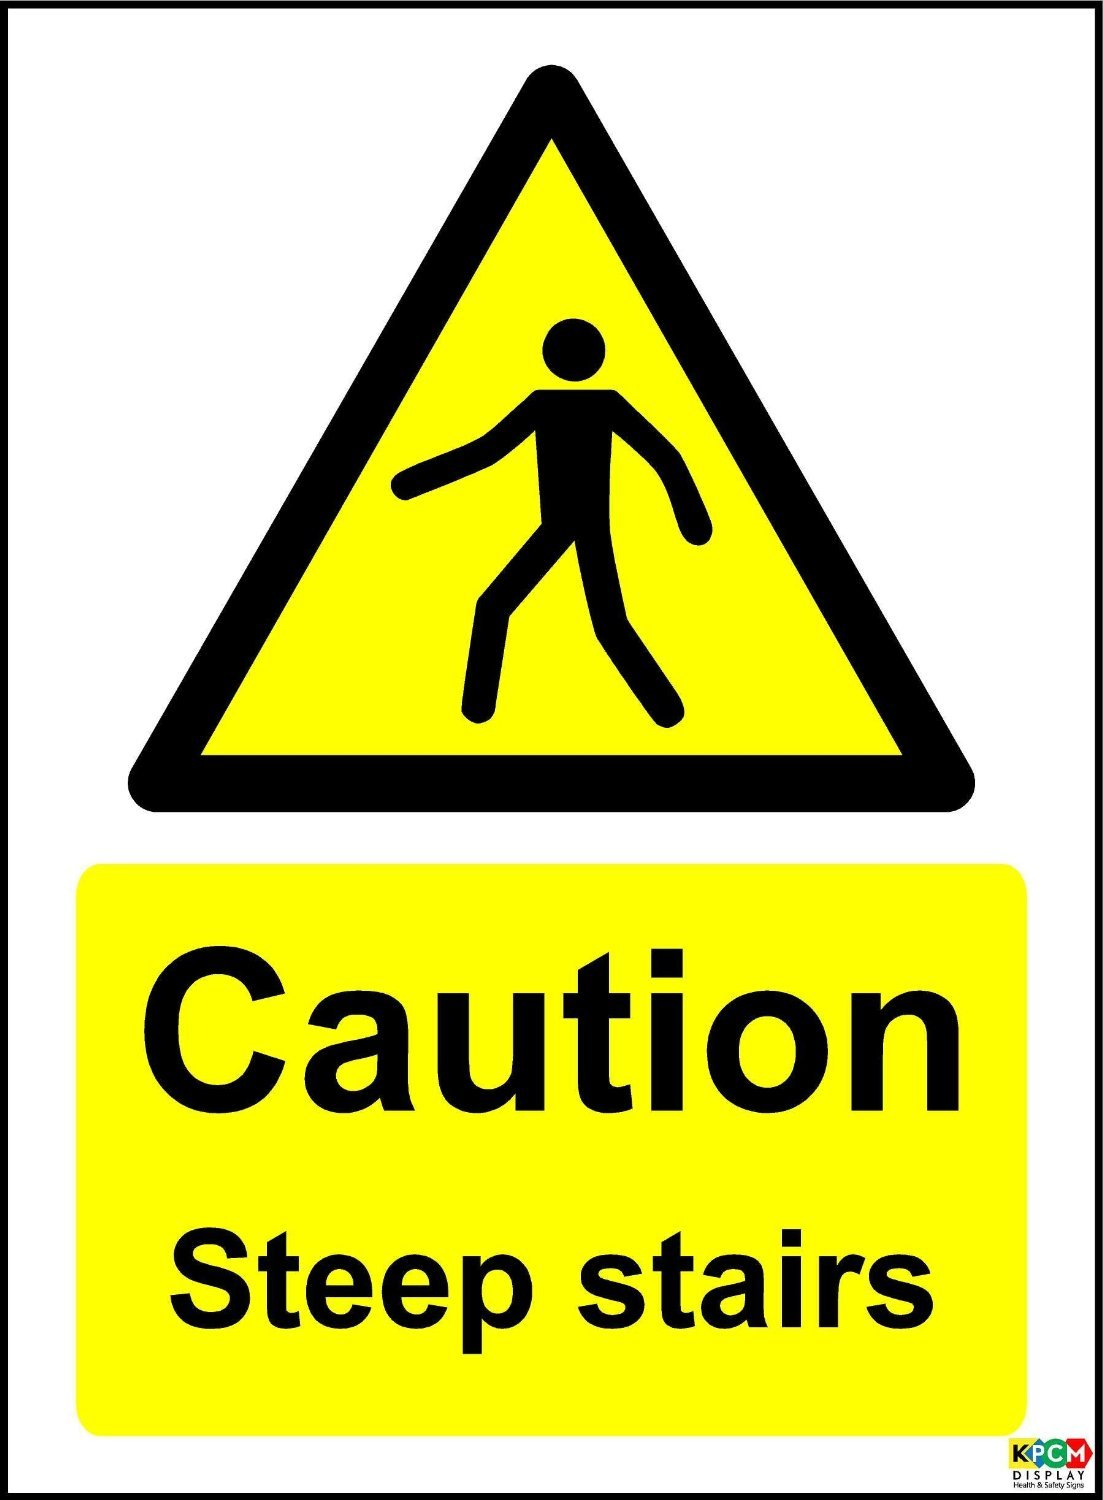 TAKE CARE ON THE STAIRS SAFETY STICKER RIGID MA417 INDOOR OUTDOOR SIGN